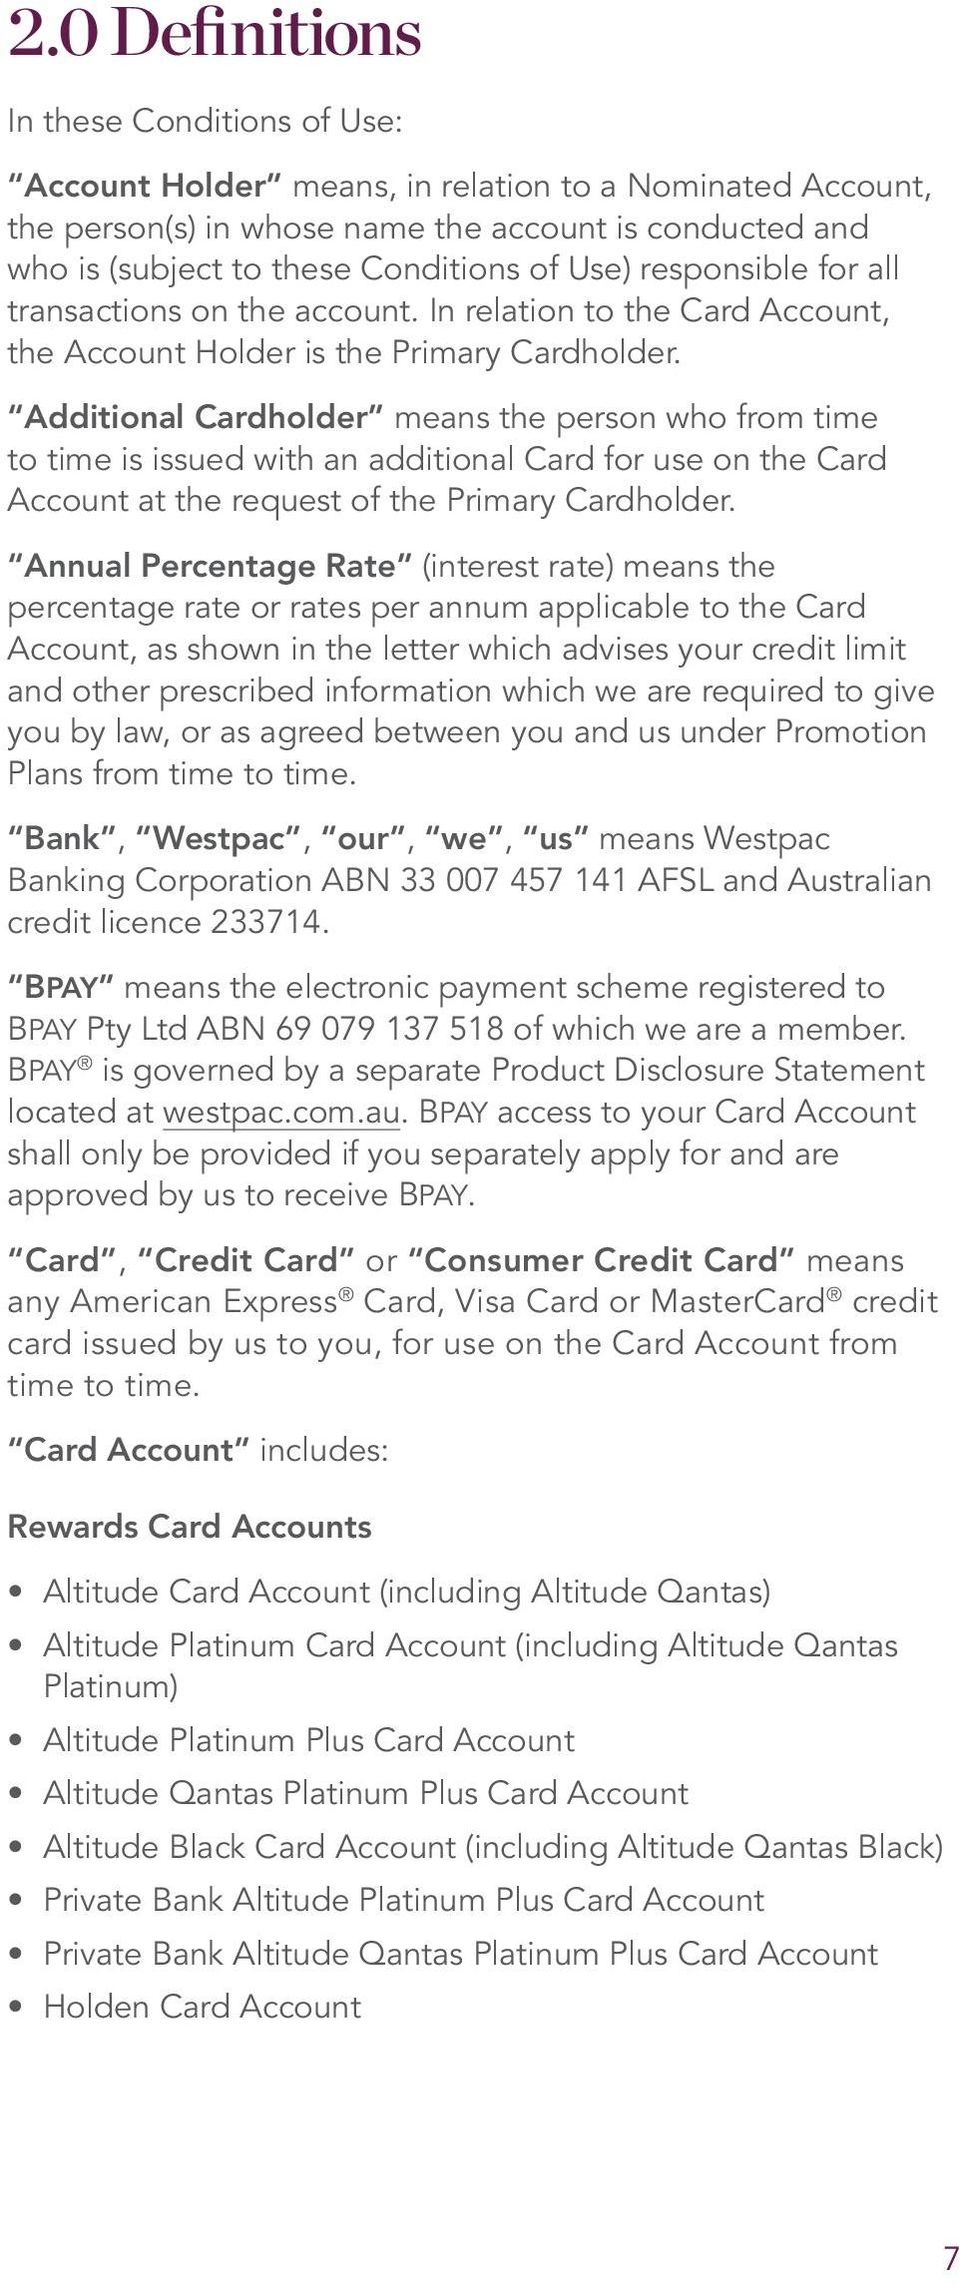 Additional Cardholder means the person who from time to time is issued with an additional Card for use on the Card Account at the request of the Primary Cardholder.